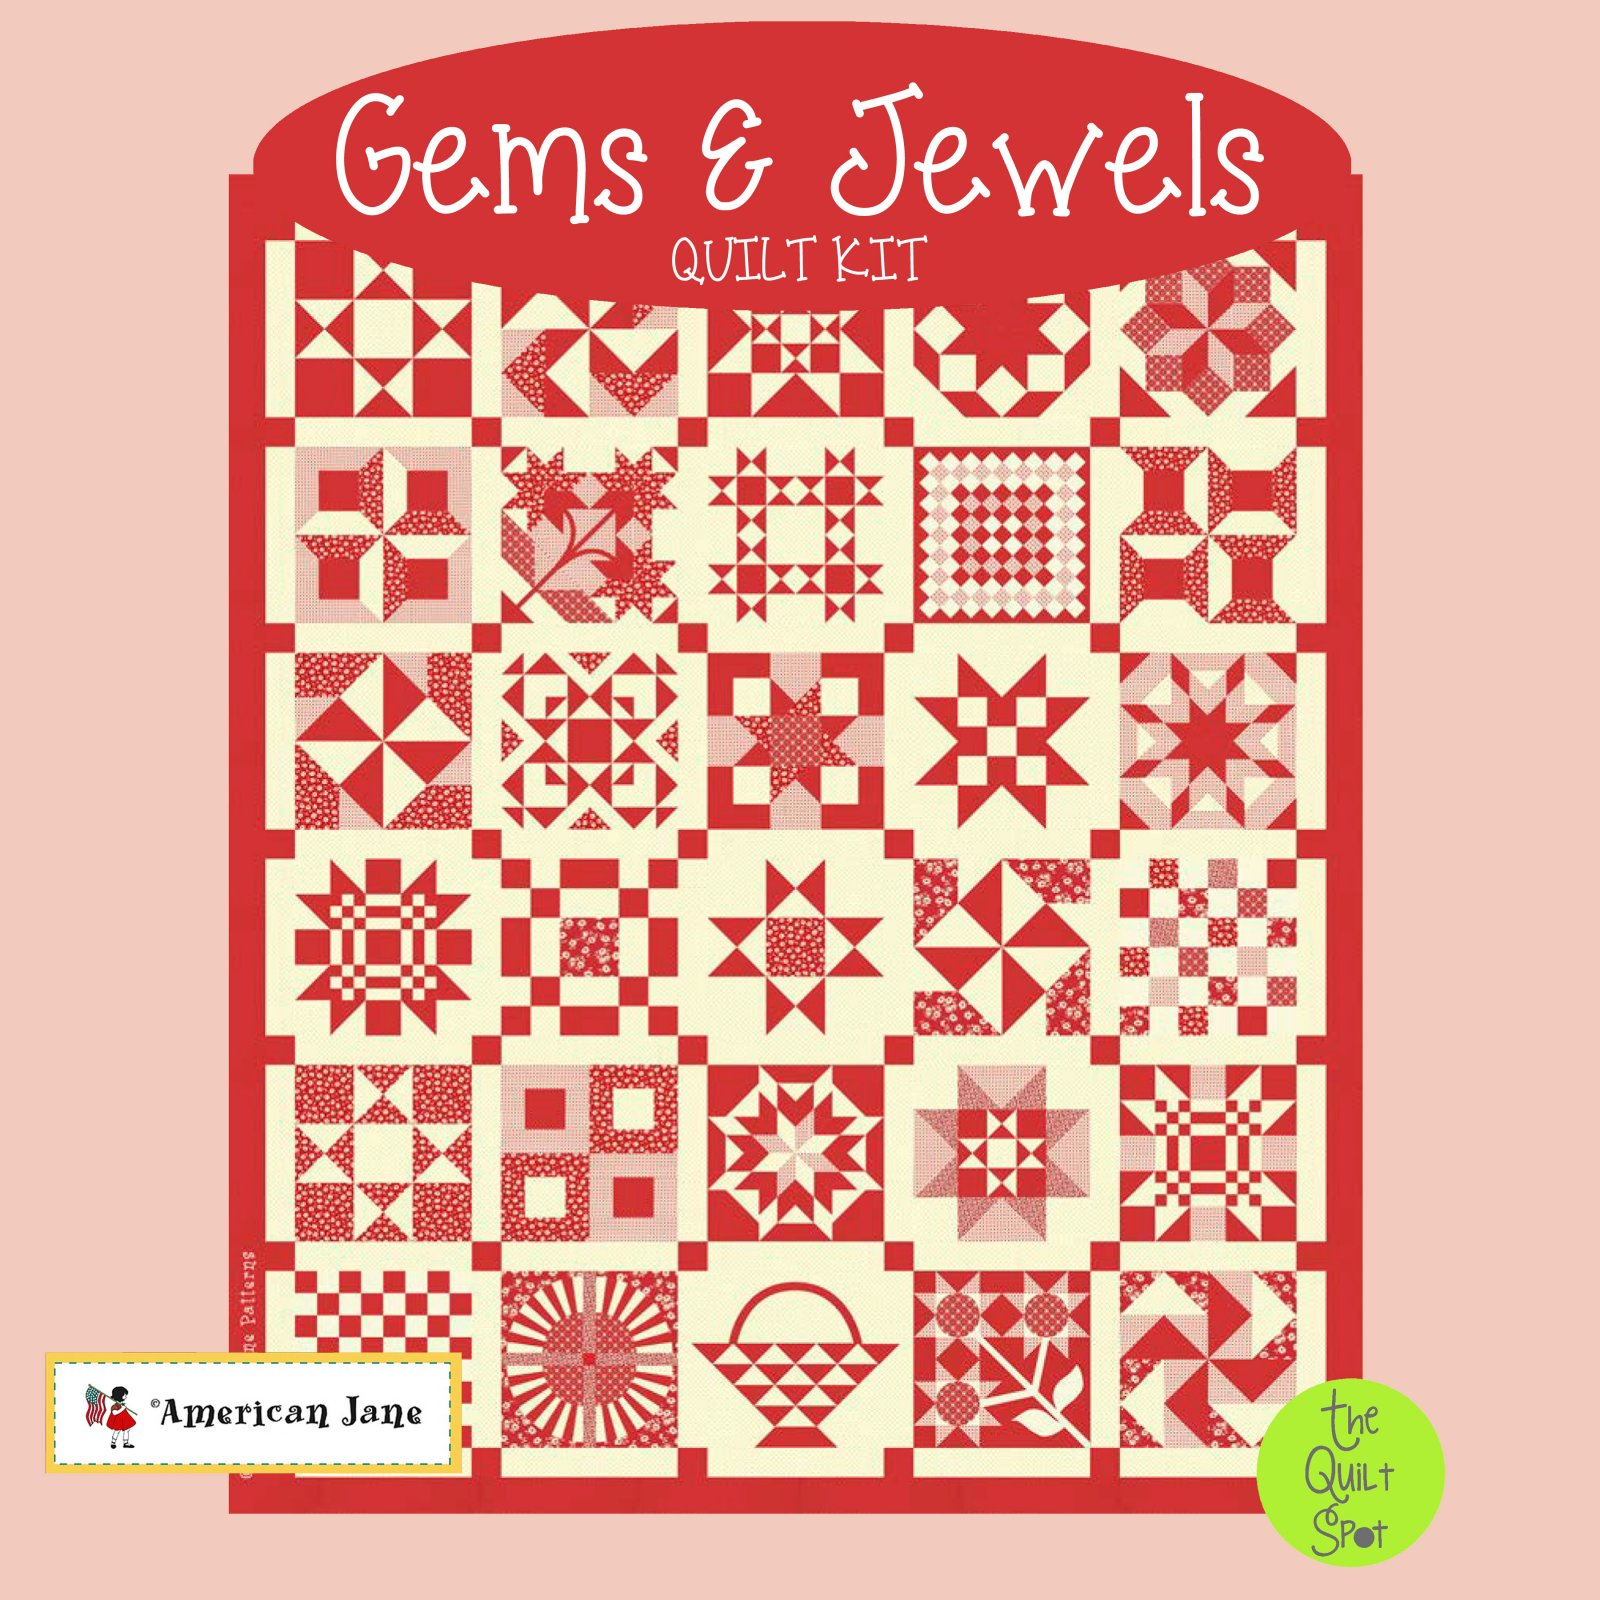 Gems & Jewels Quilt Kit - Red Colorway